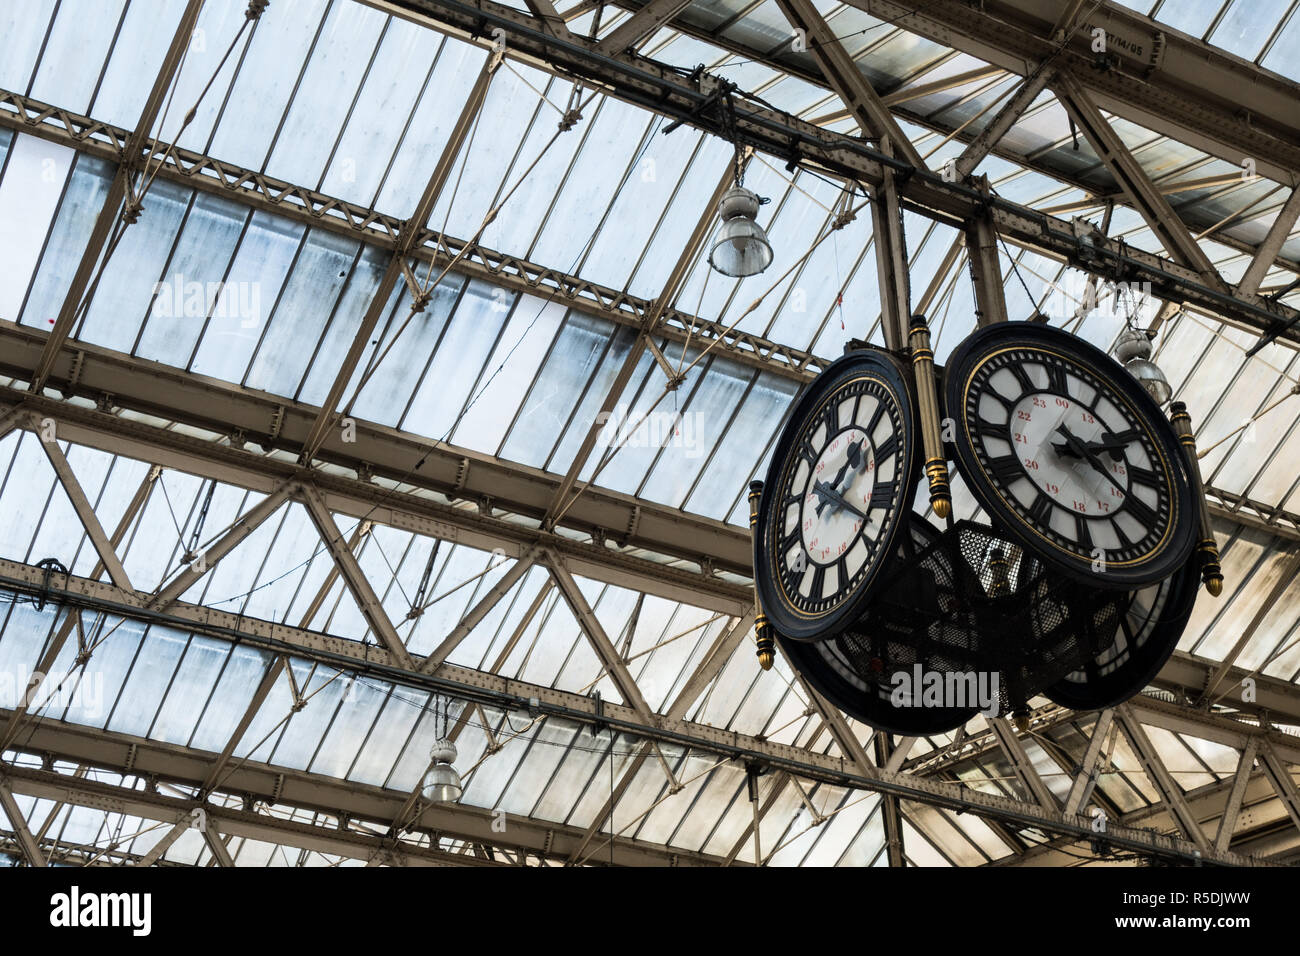 Clock in railway station departure hall. - Stock Image